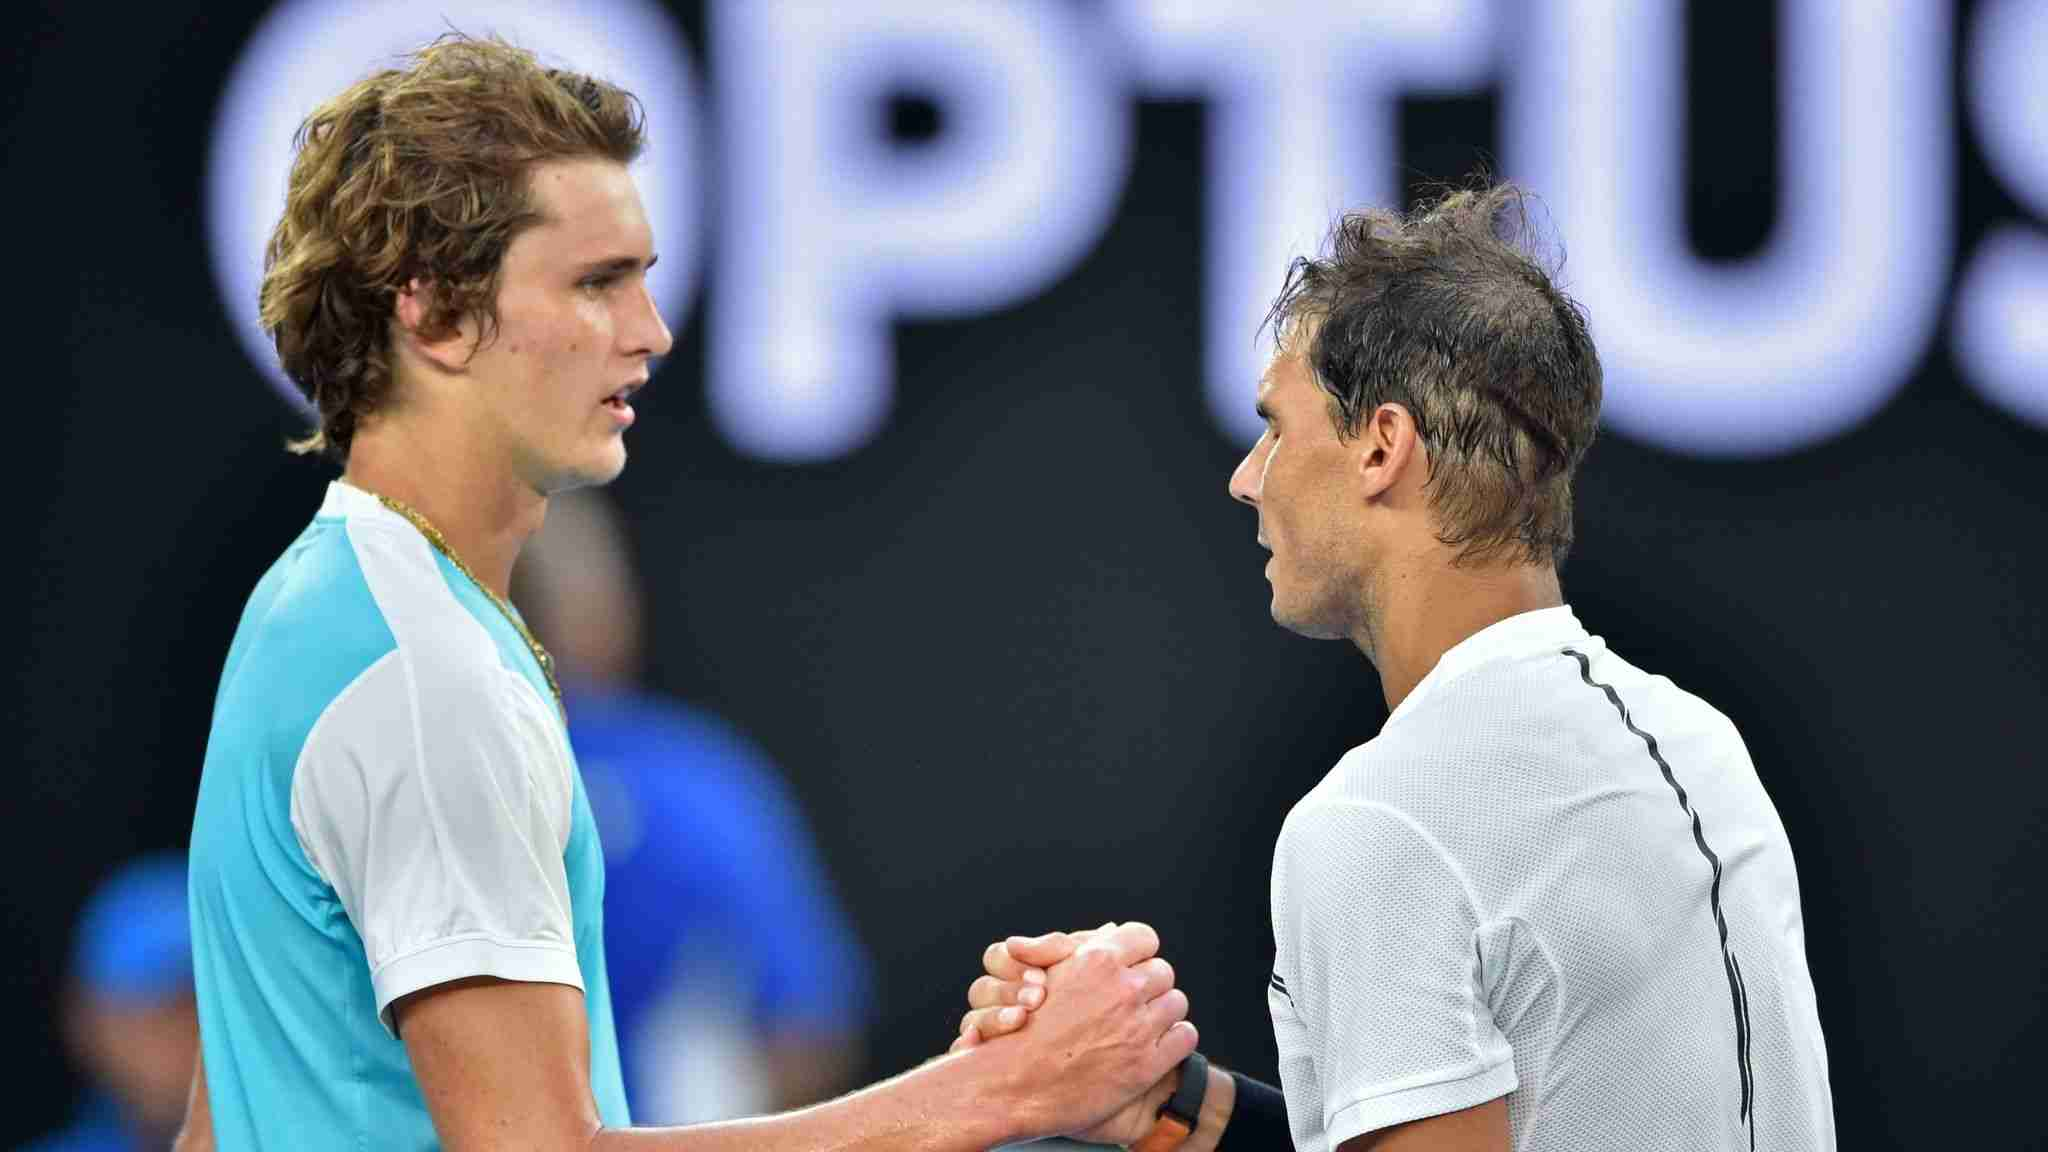 Alexander Zverev claims defeating Rafael Nadal at clay court would feel different.